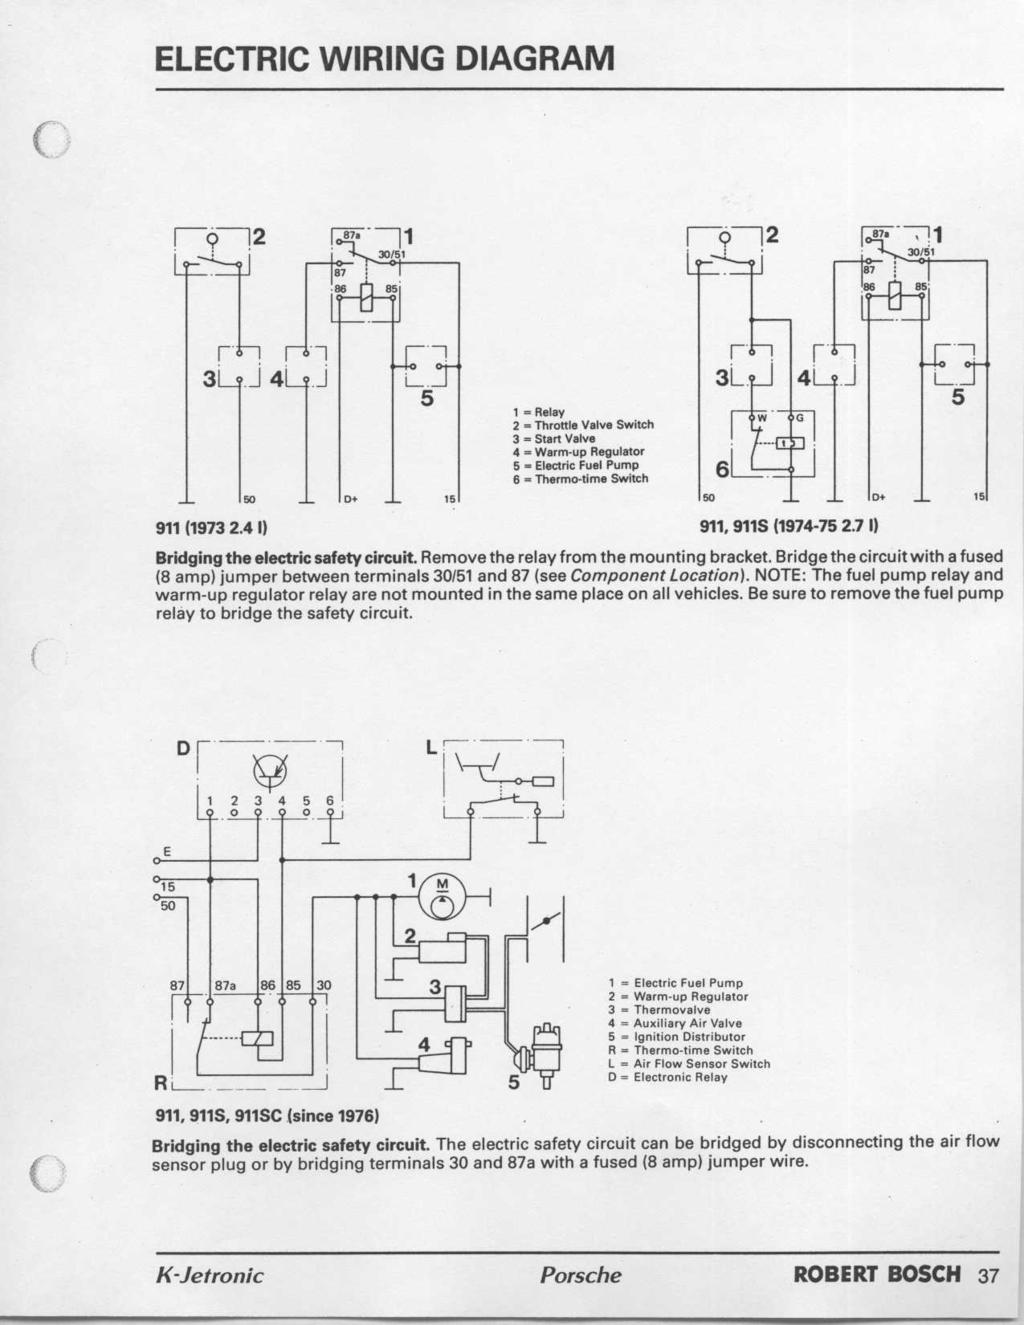 hight resolution of electric wiring diagram 87a 11 30 51 0 87 86 5 87a 1 30